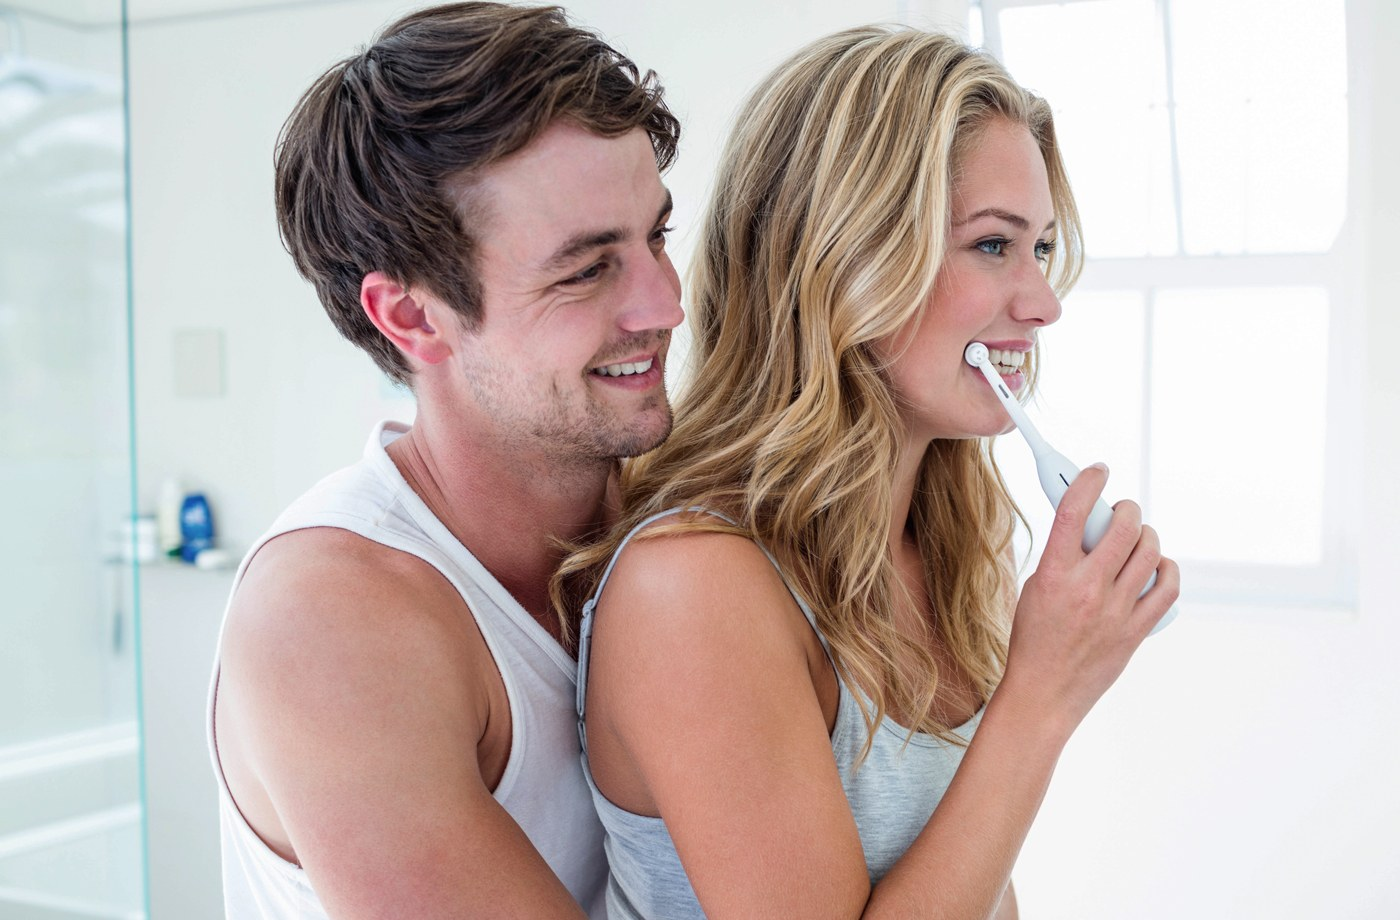 Here's how gross sharing a toothbrush with your partner really is, according to a dentist